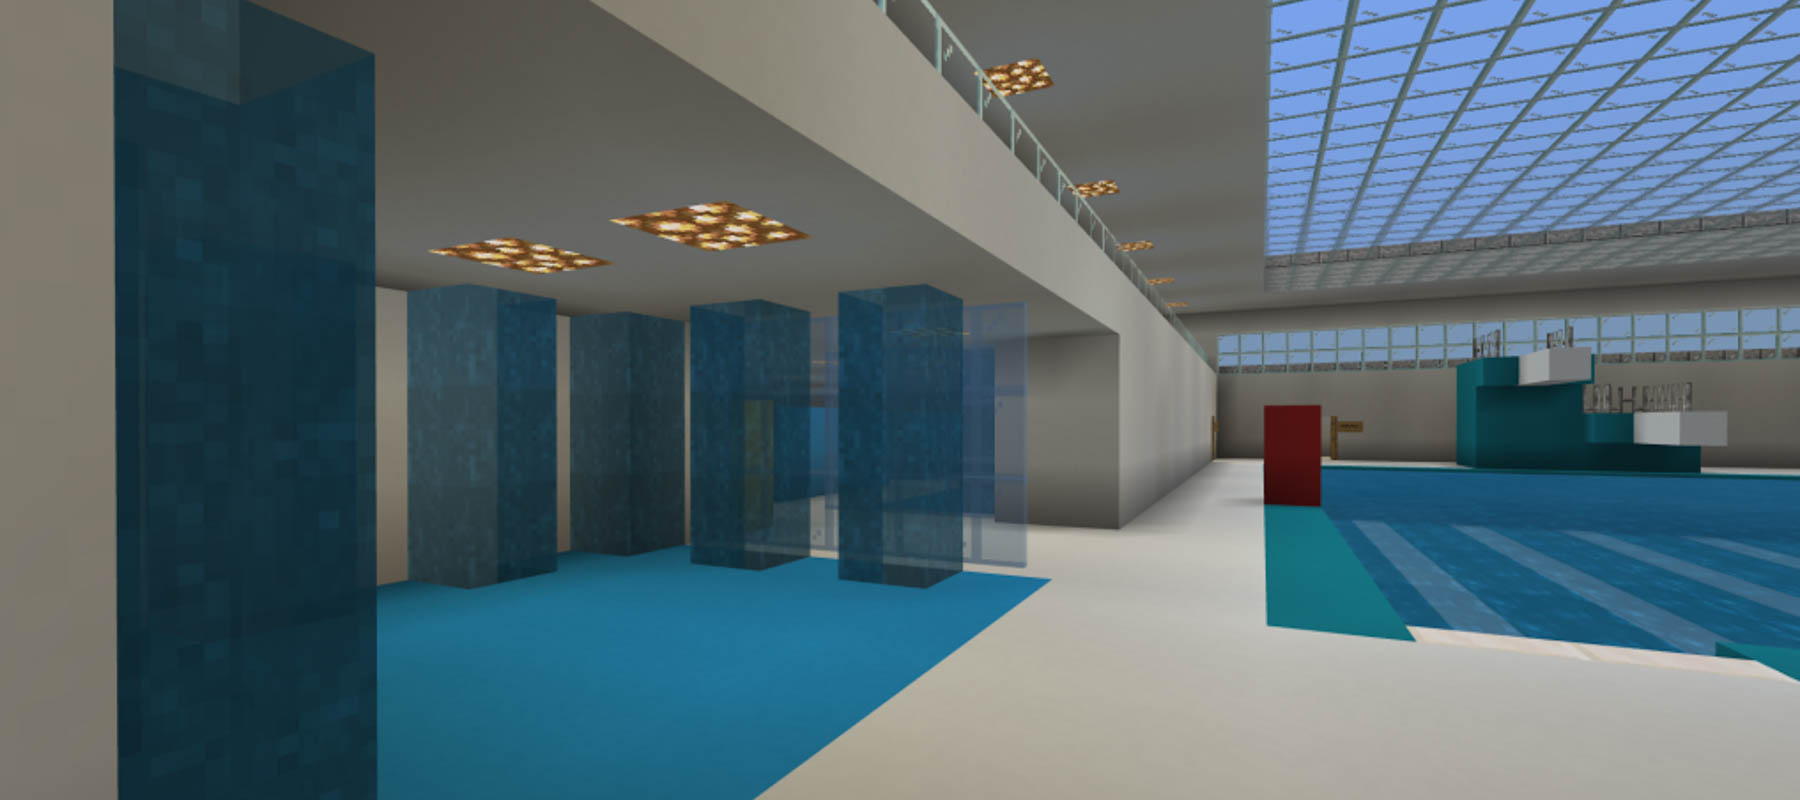 Mock up of lower level indoor swimming pool, with swimming pool, diving boards and changing areas